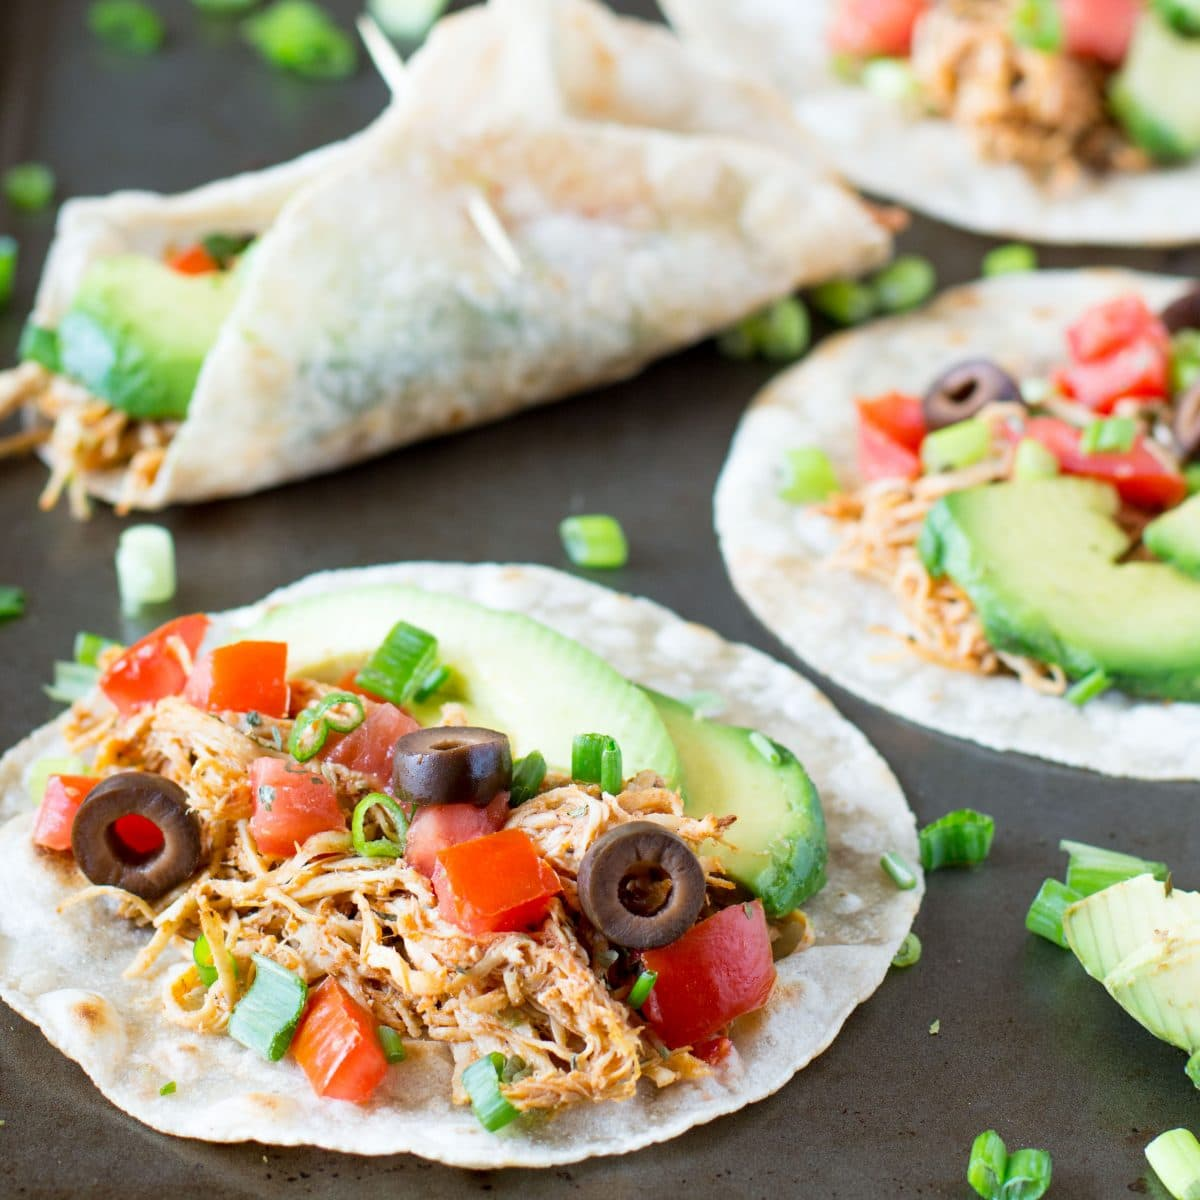 chipotle-chicken-tacos-image